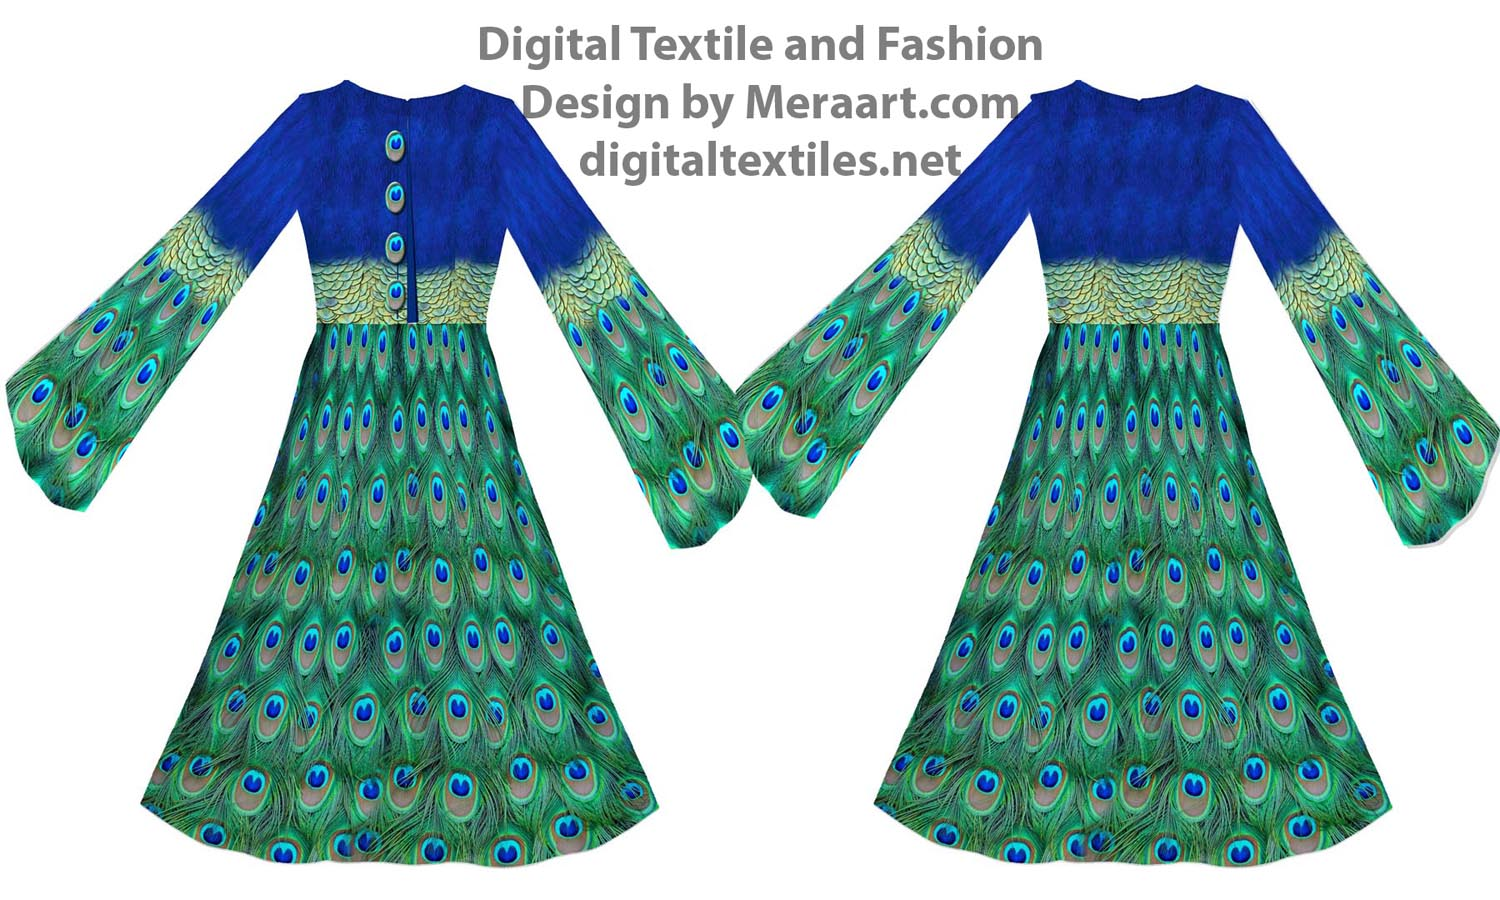 Digital textile fashion prints designer dress online servies (2)